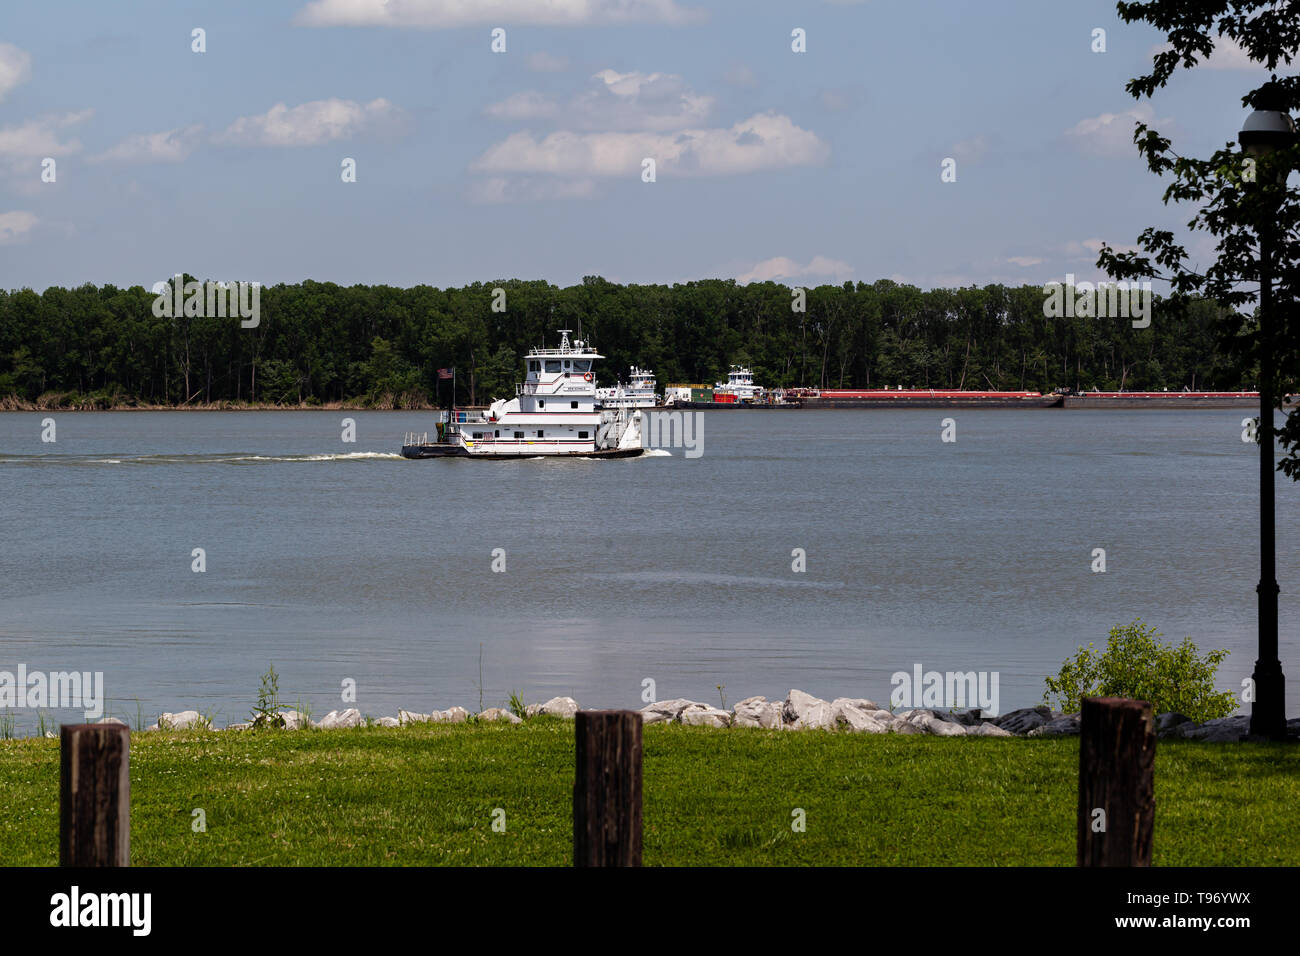 A empty towboat, the Ken Echols, traveling upstream on the Ohio River in Paducah, Kentucky - Stock Image